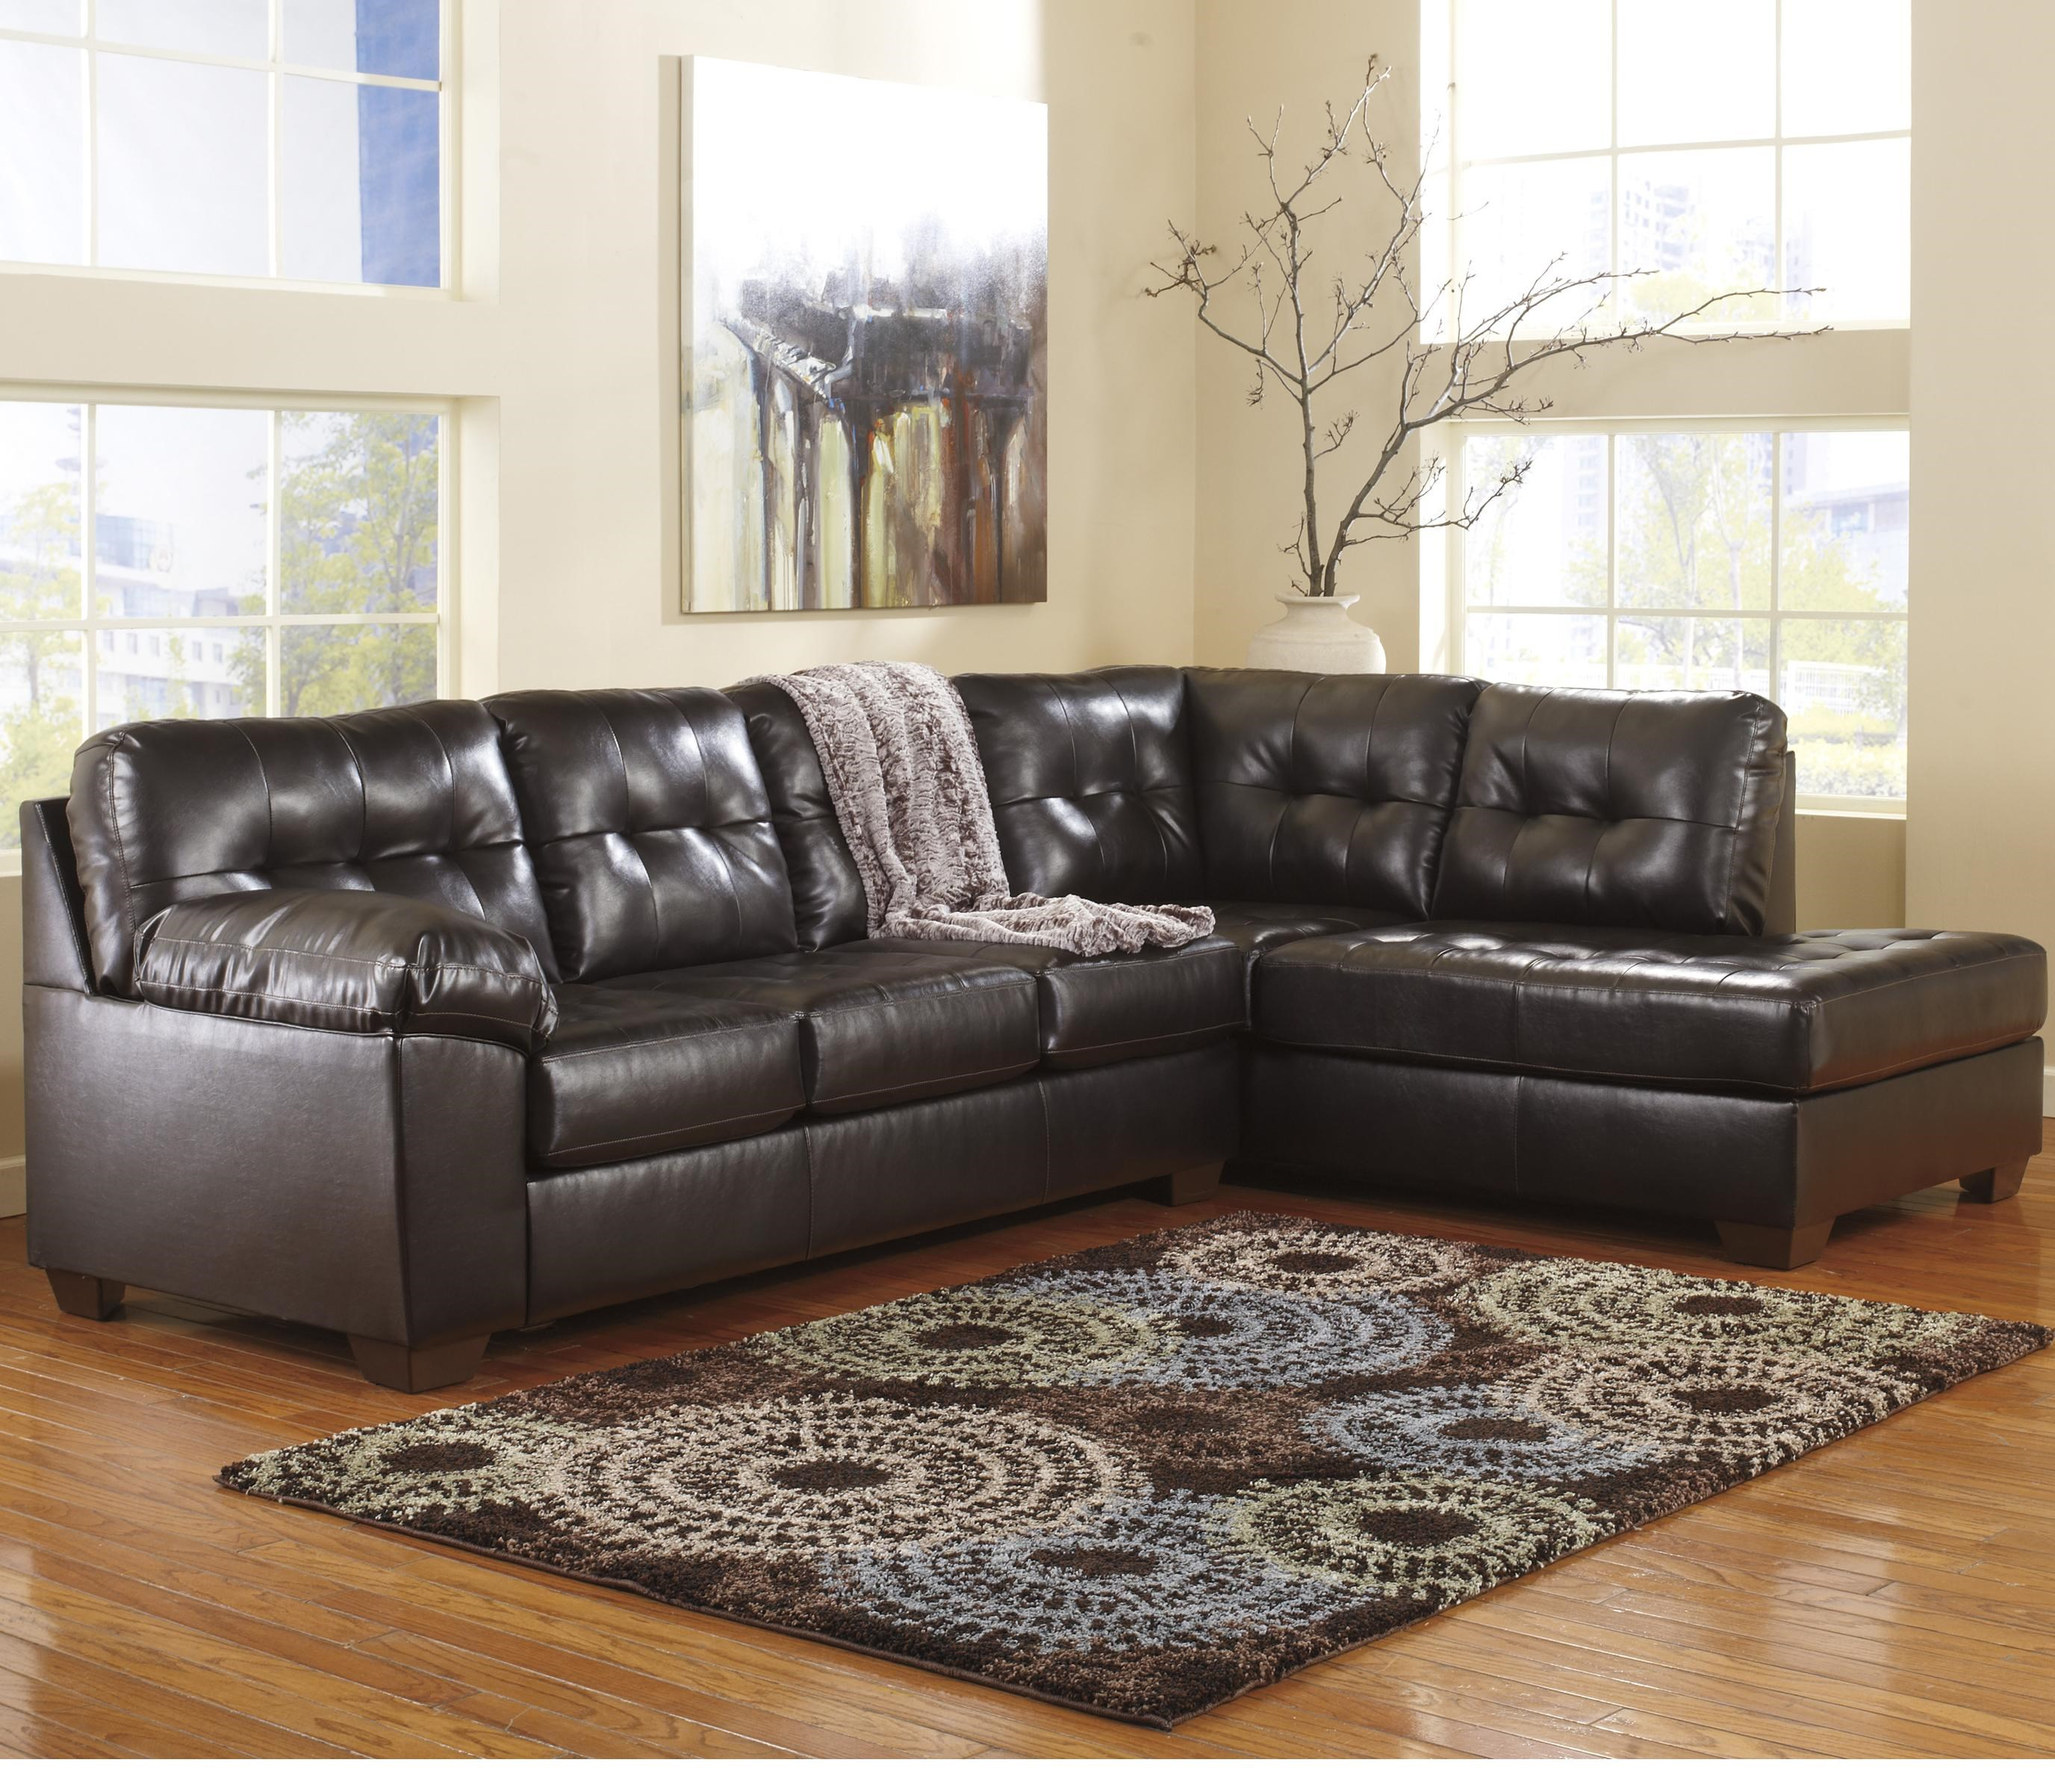 Signature Design by Ashley Alliston DuraBlend® - Chocolate Sectional w/ Right Chaise u0026 Tufting  sc 1 st  Rotmans : ashley sofa sectional - Sectionals, Sofas & Couches